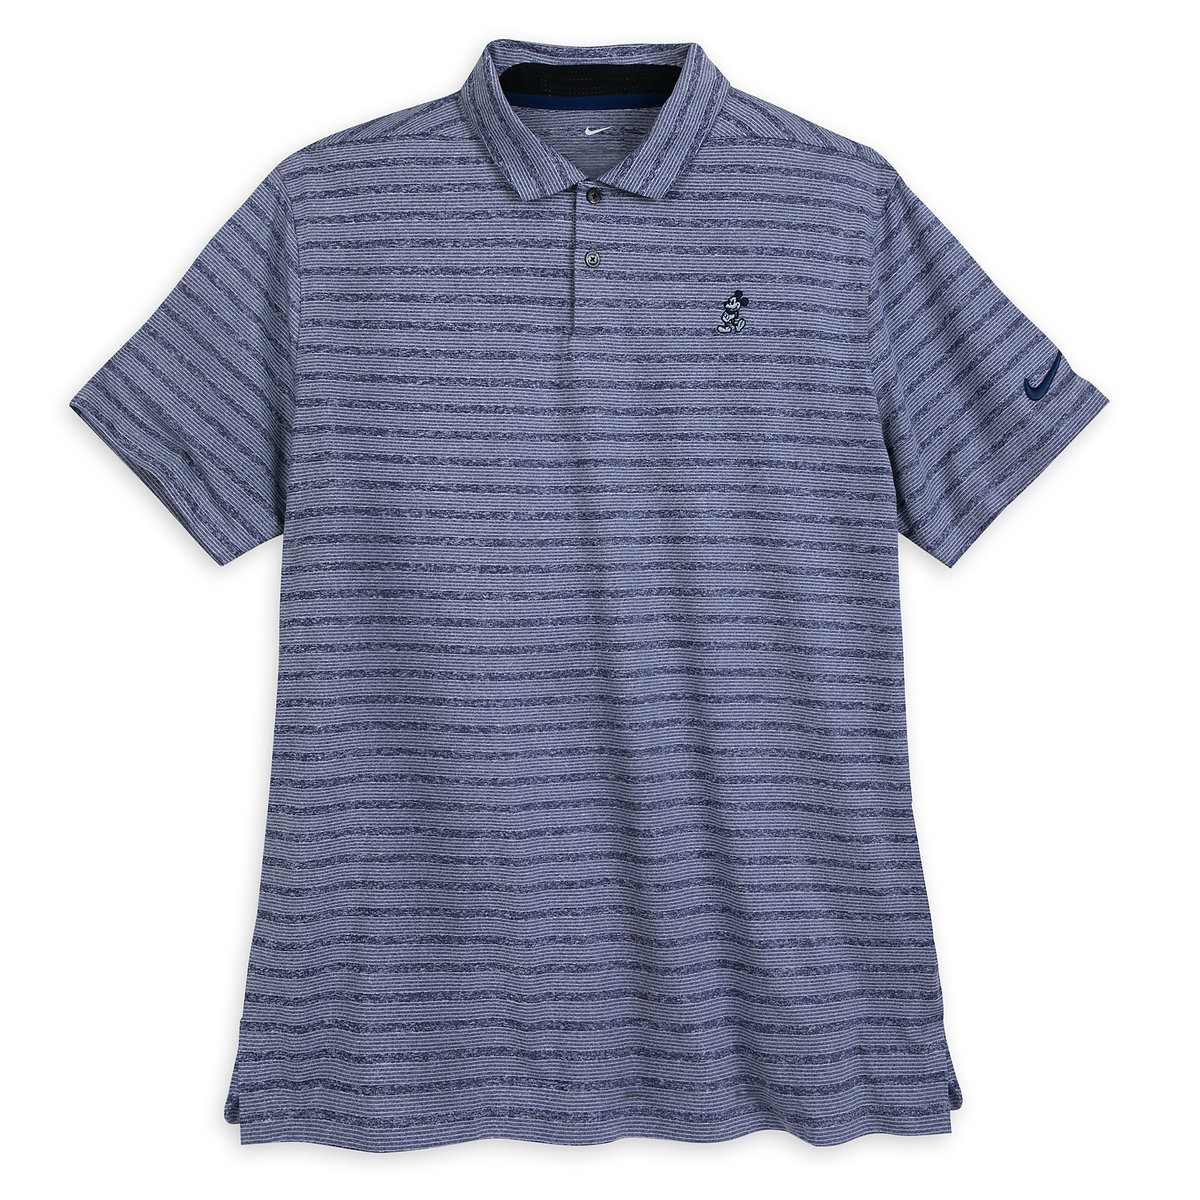 Nike Performance Polo >> Mickey Mouse Striped Performance Polo Shirt For Men By Nike Blue